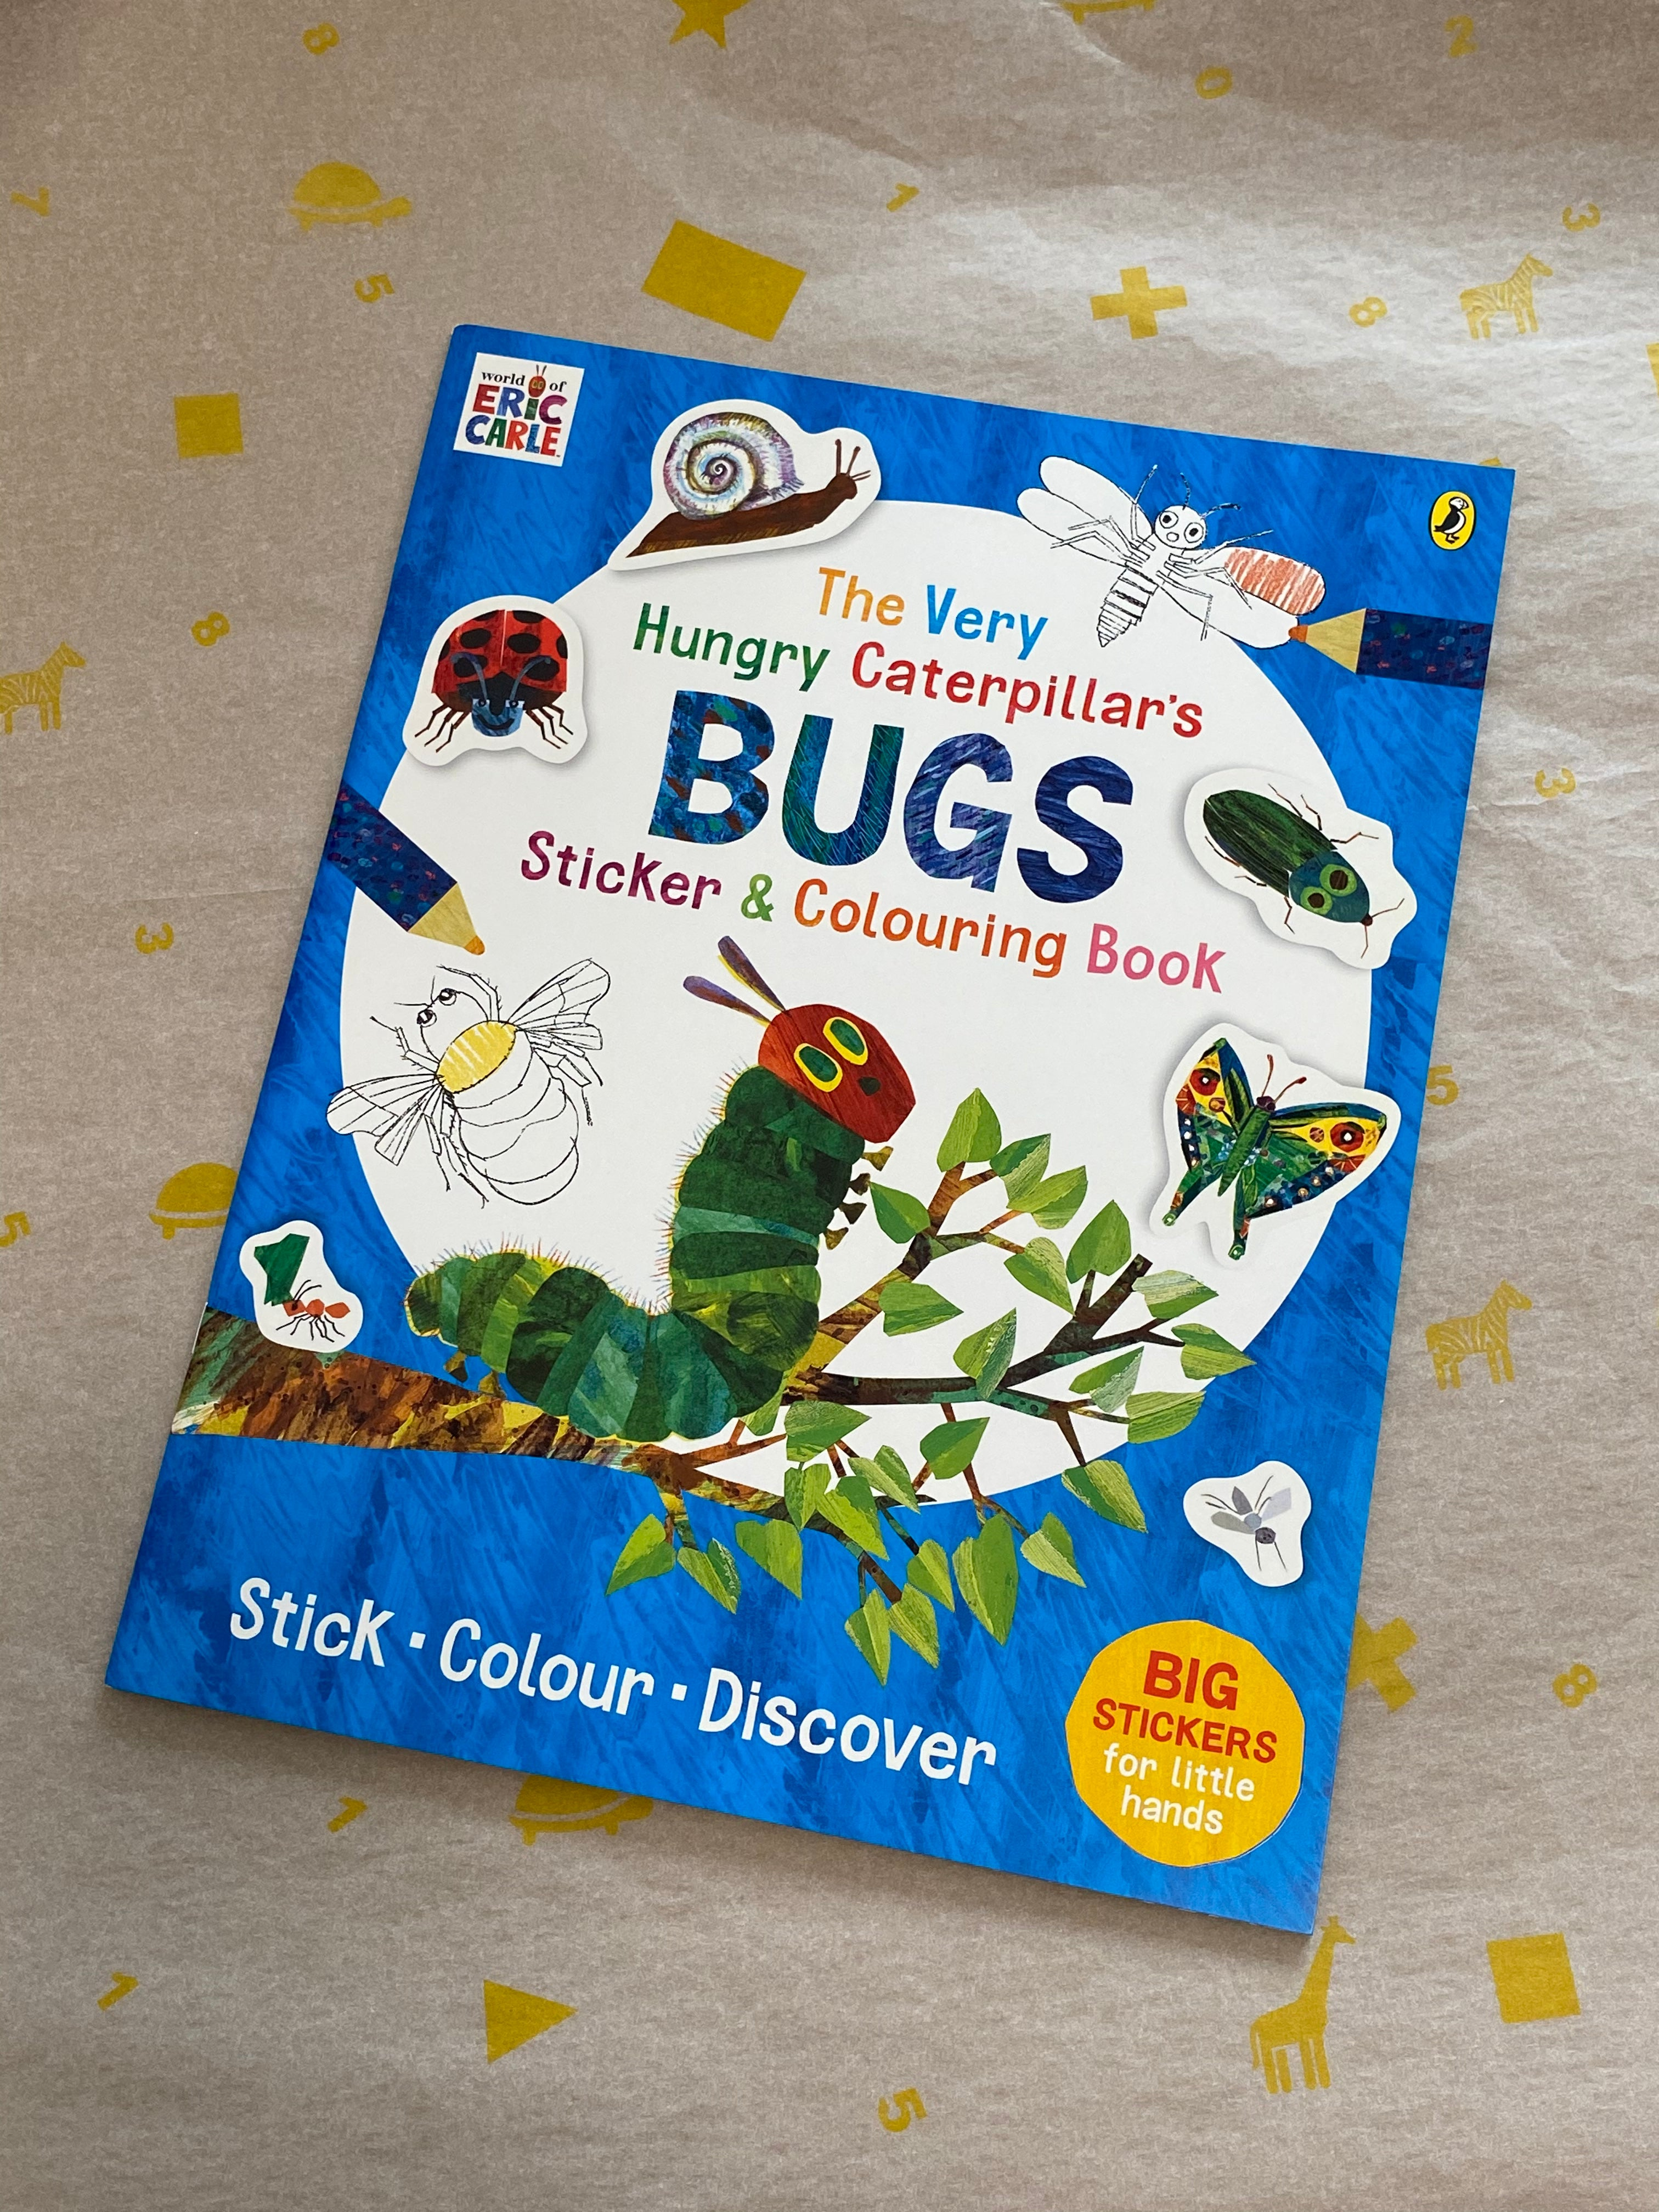 The Very Hungry Caterpillar's BUGS Sticker & Colouring Book